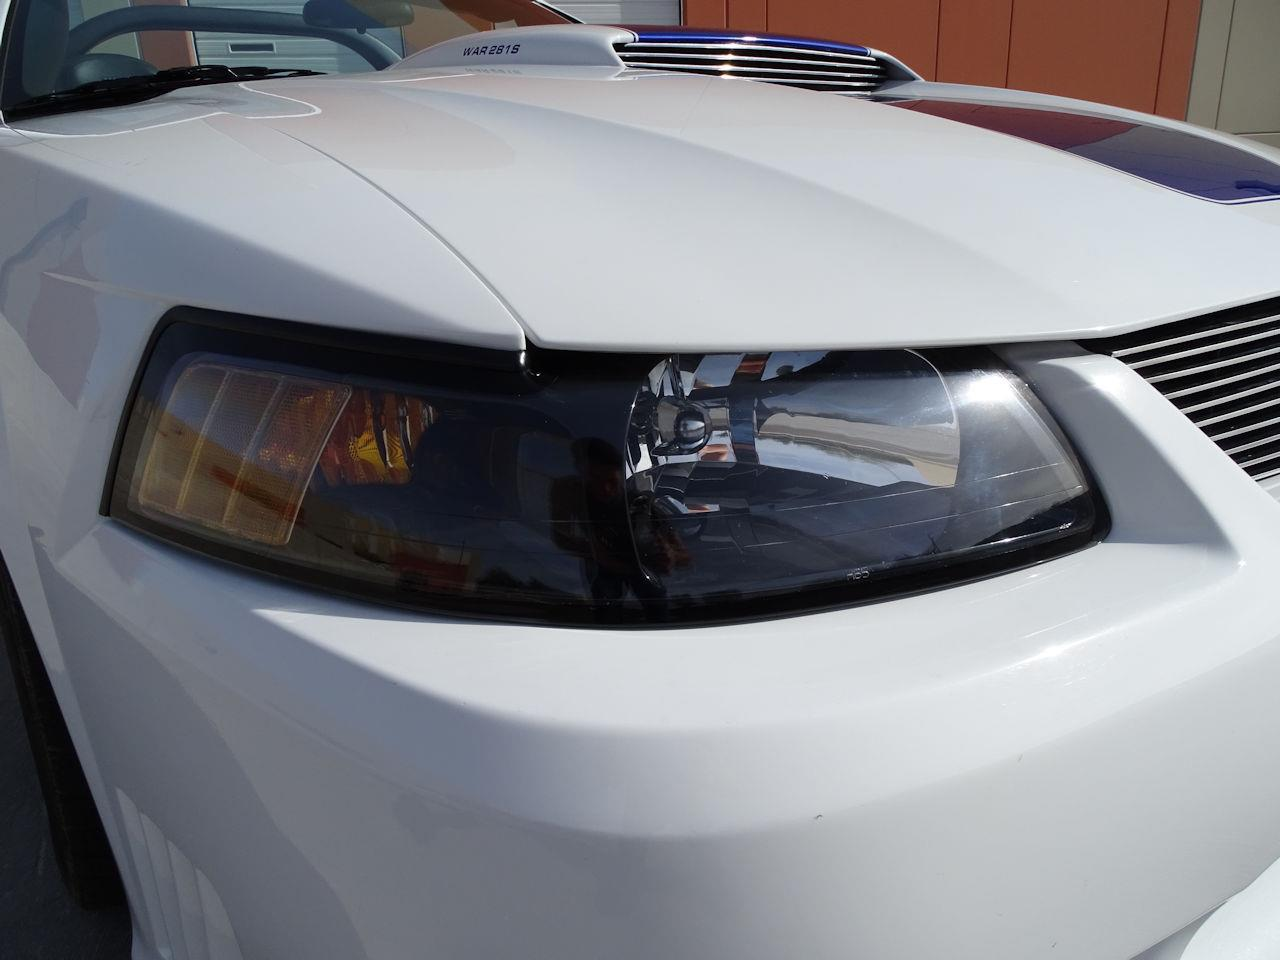 Large Picture of '02 Mustang - $31,995.00 Offered by Gateway Classic Cars - Scottsdale - MZG0